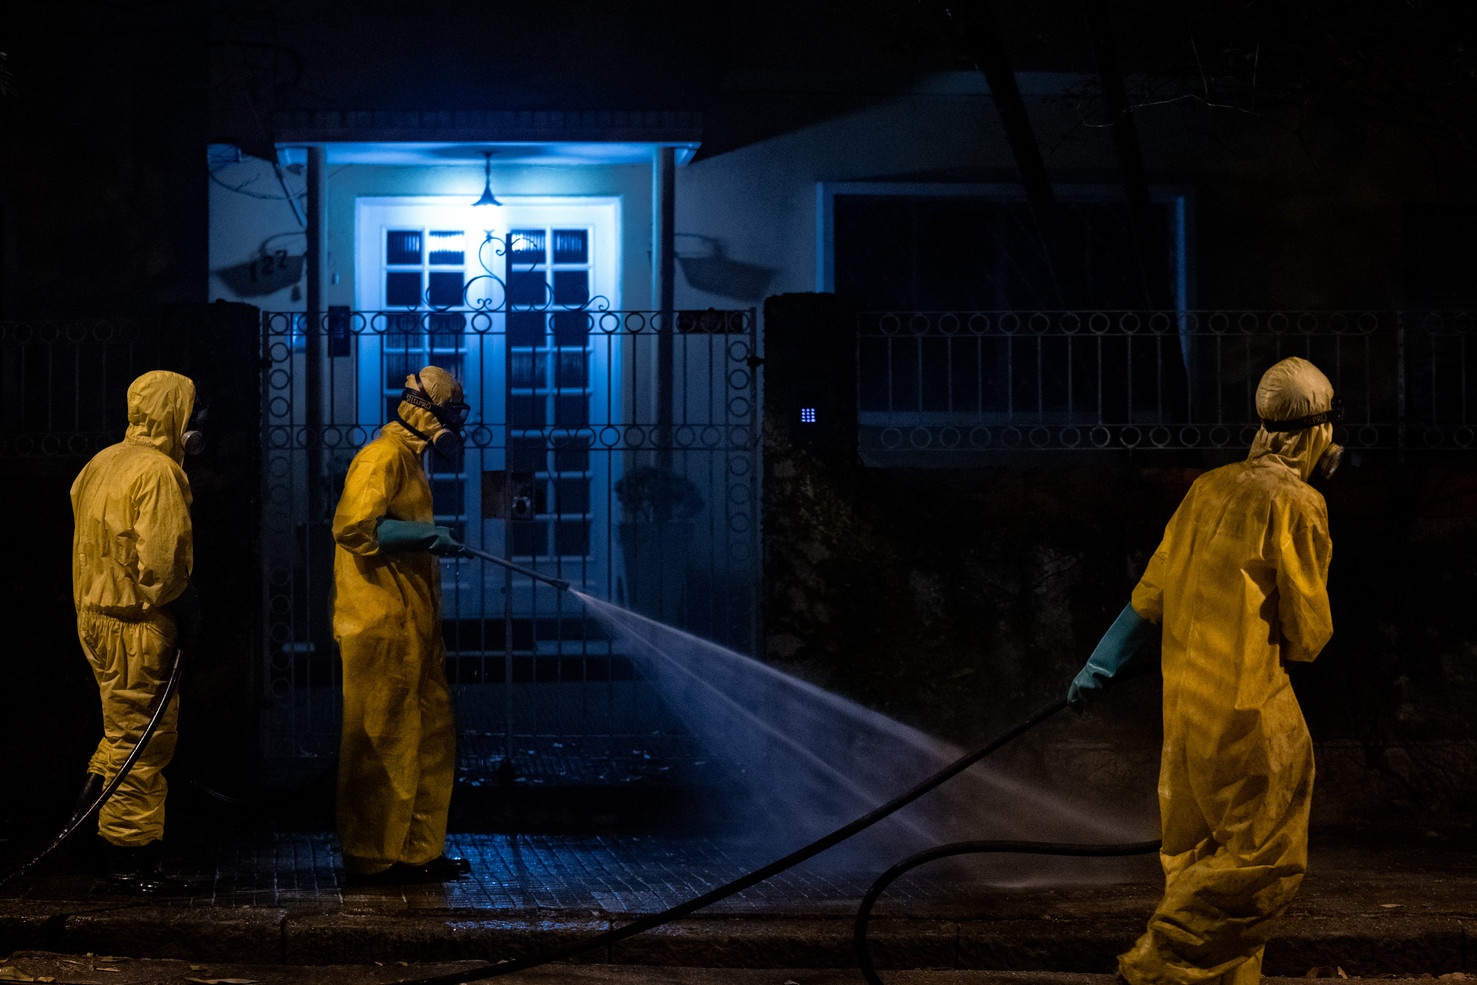 Workers spray desinfecting agent on the sidewalks in Boqueirão neighborhood as a way to combat coronavirus (COVID-19) transmission during the night in Santos, Brazil, April 25, 2020.